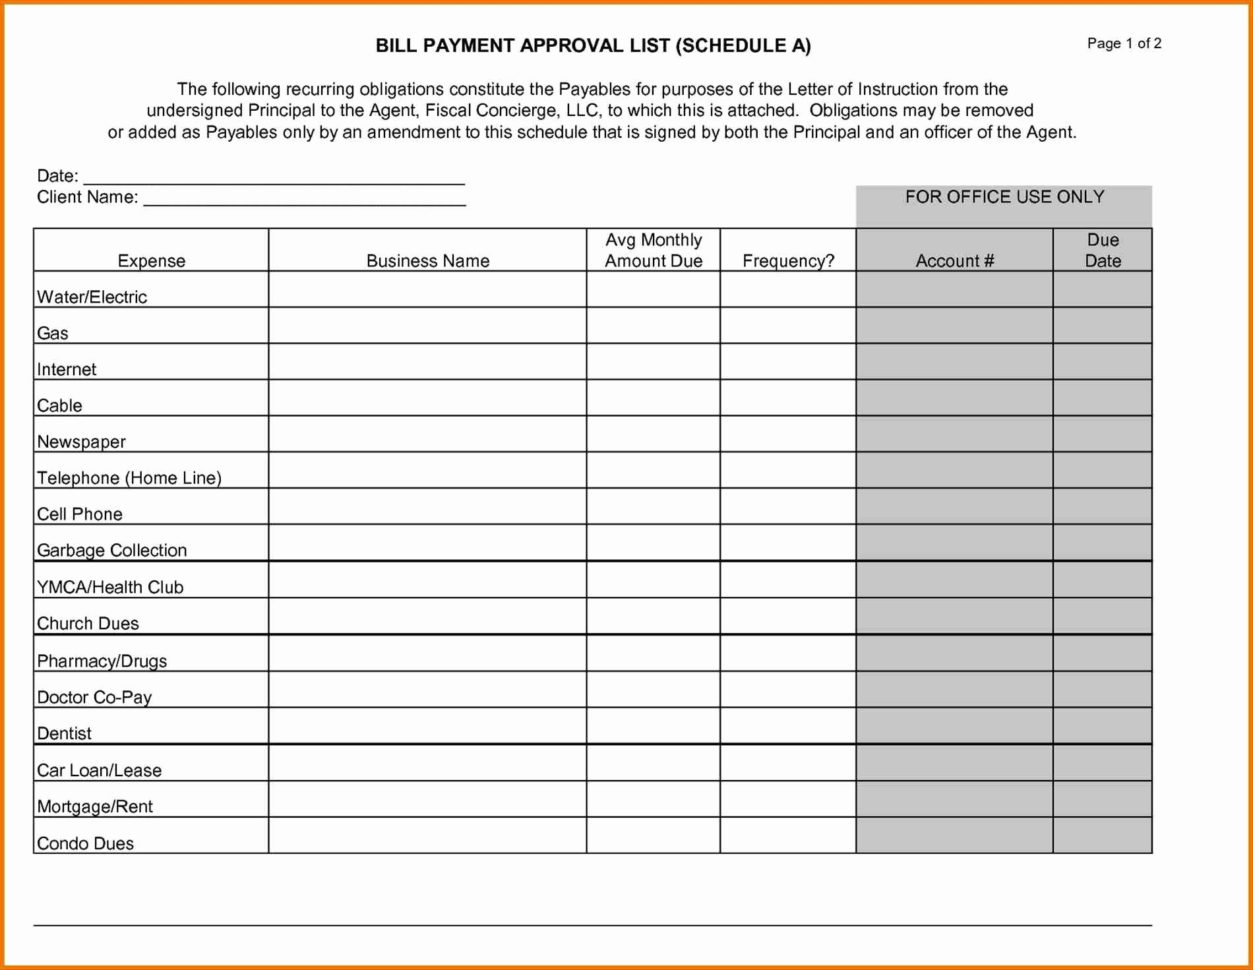 Construction Loan Draw Schedule Spreadsheet Regarding Spreadsheet Construction Loan Draw Schedule  Www.miifotos